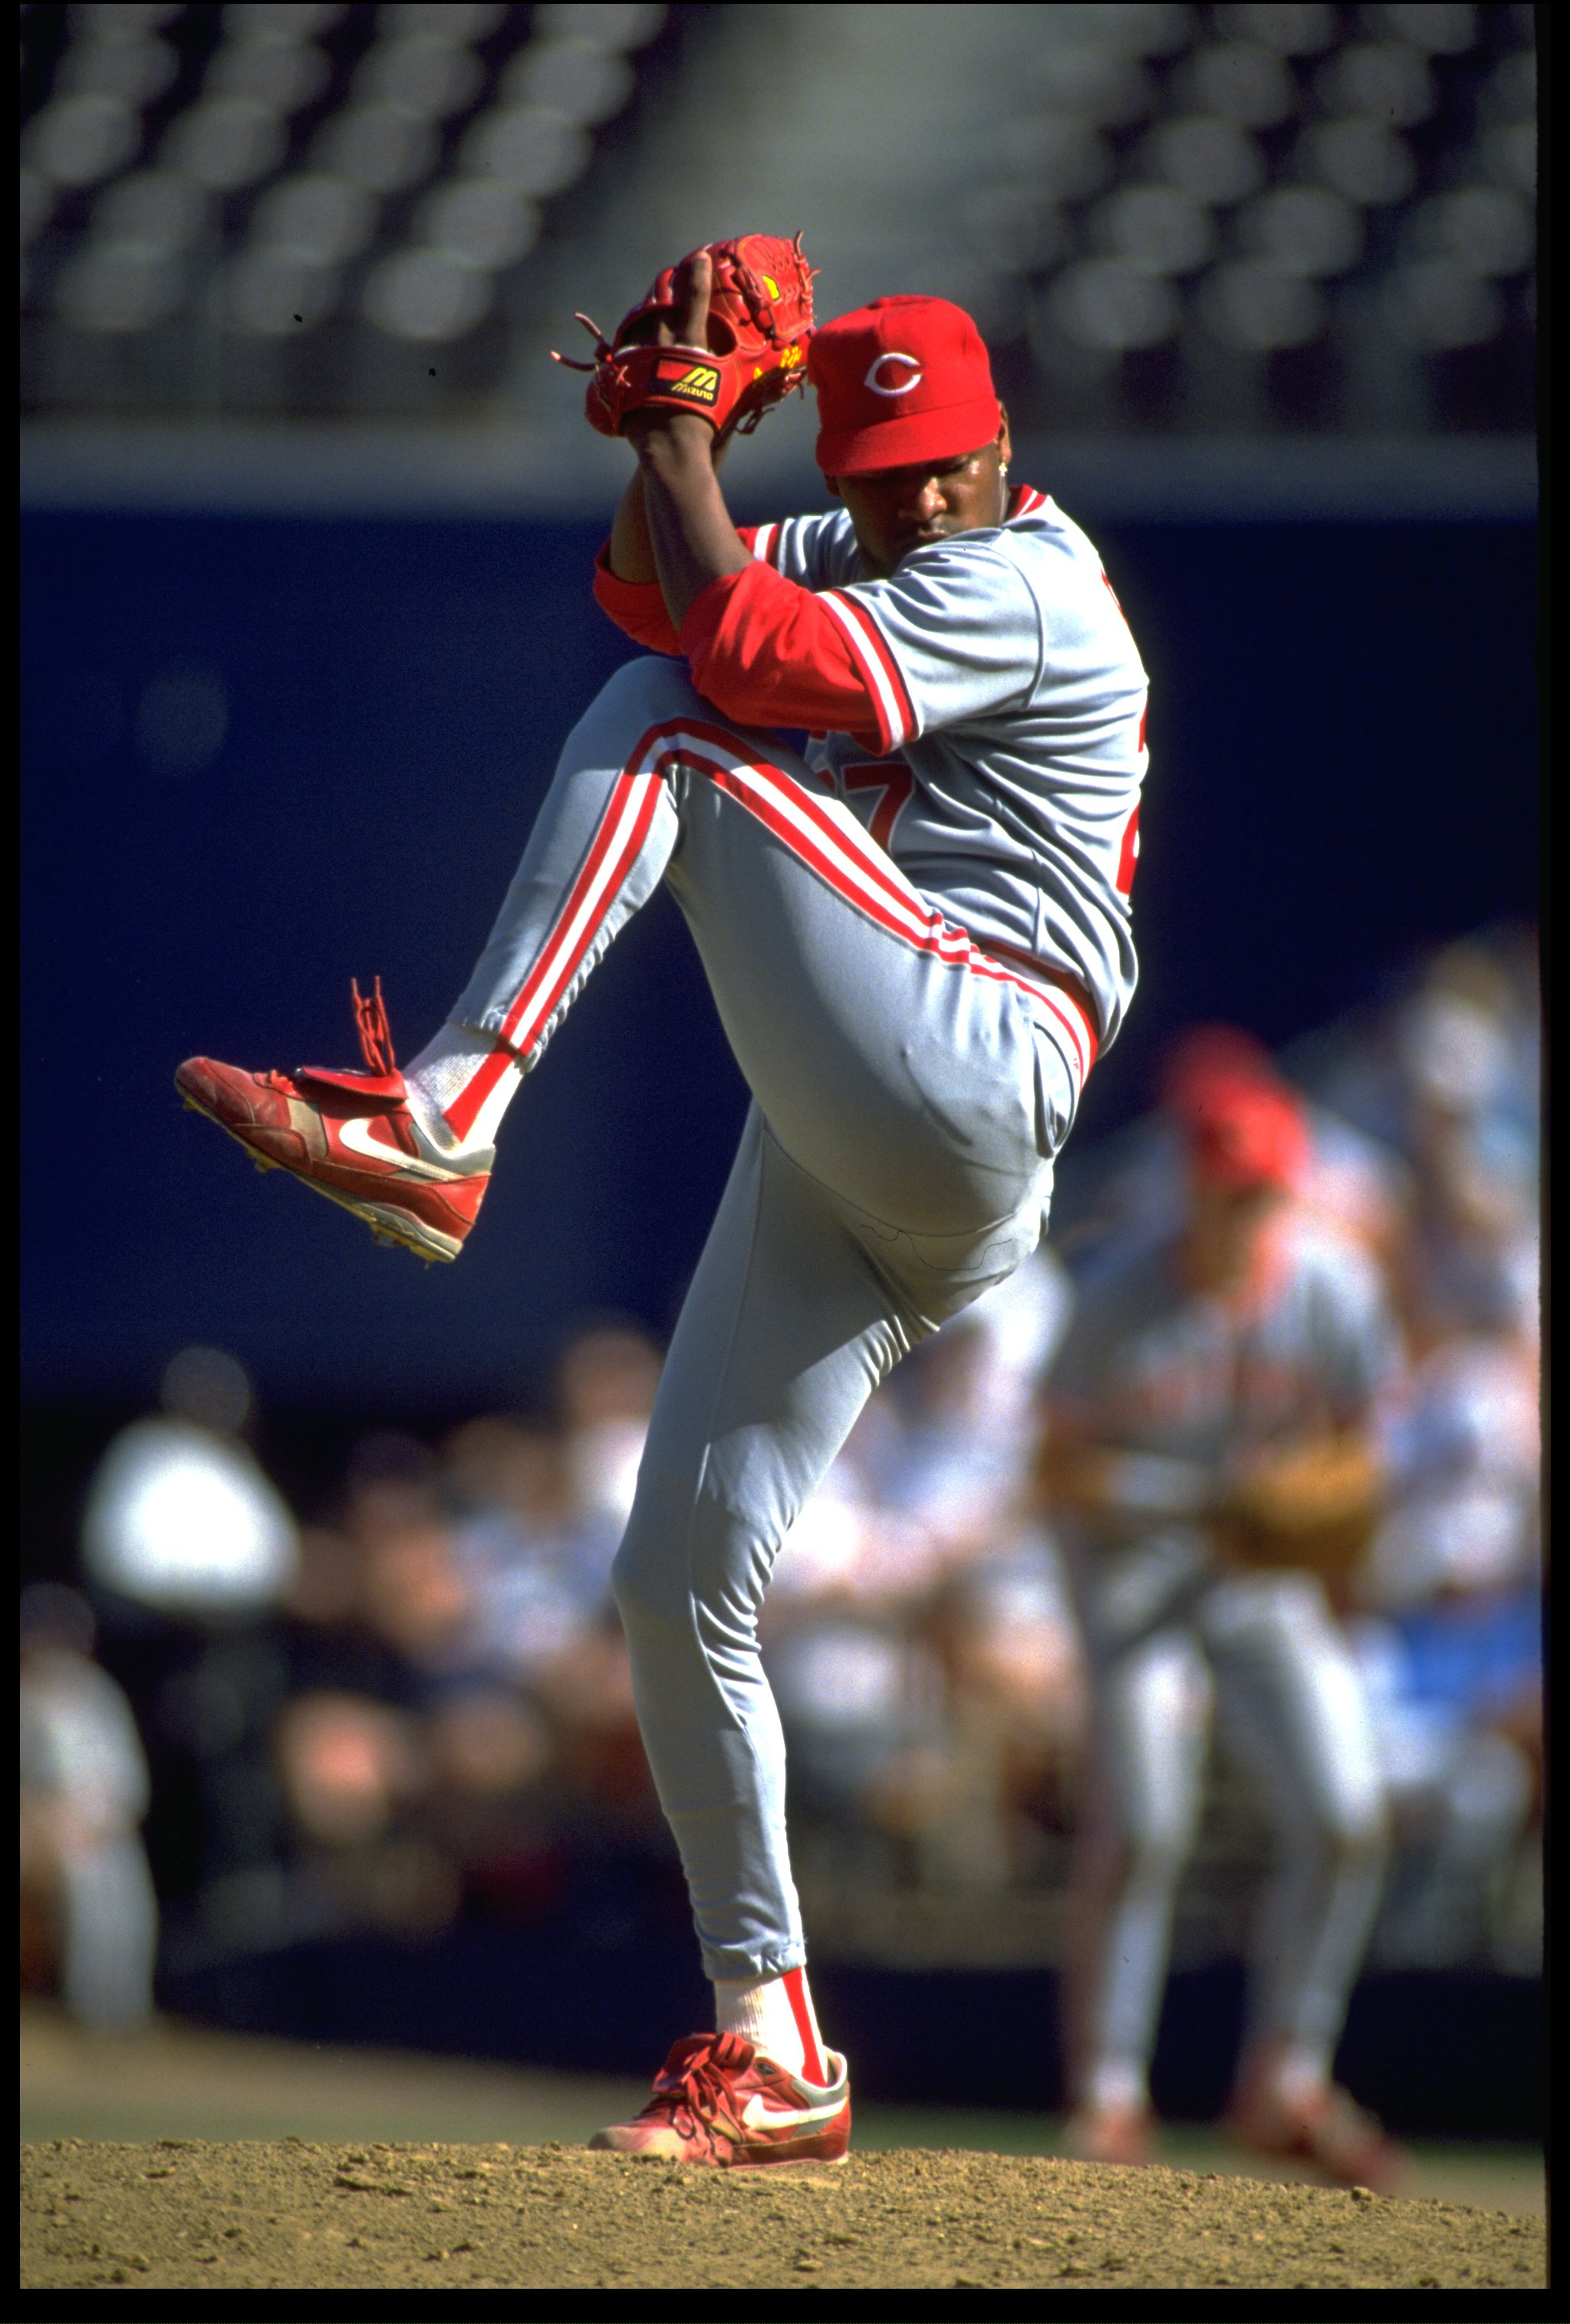 6 OCT 1991:  CINCINNATI REDS PITCHER JOSE RIJO WINDS UP TO PITCH DURING THE REDS VERSUS SAN DIEGO PADRES GAME AT JACK MURPHY STADIUM IN SAN DIEGO, CALIFORNIA.  MANDATORY CREDIT:  STEPHEN DUNN/ALLSPORT